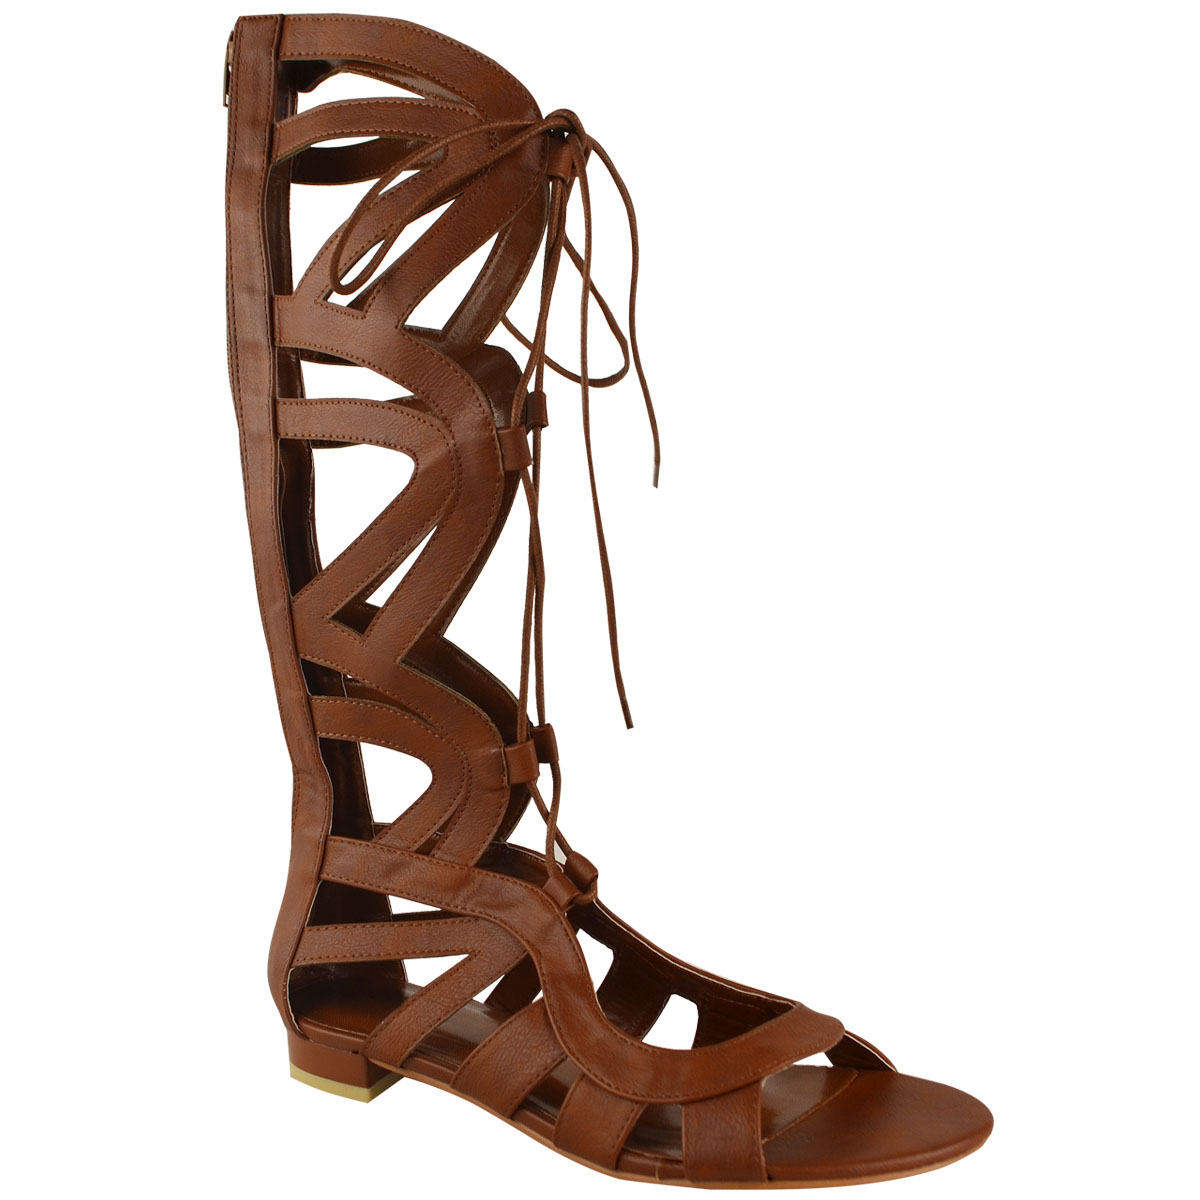 c37cbbfc2e6 WOMENS LADIES KNEE HIGH GLADIATOR LACE UP CUT OUT FLAT SANDALS ...